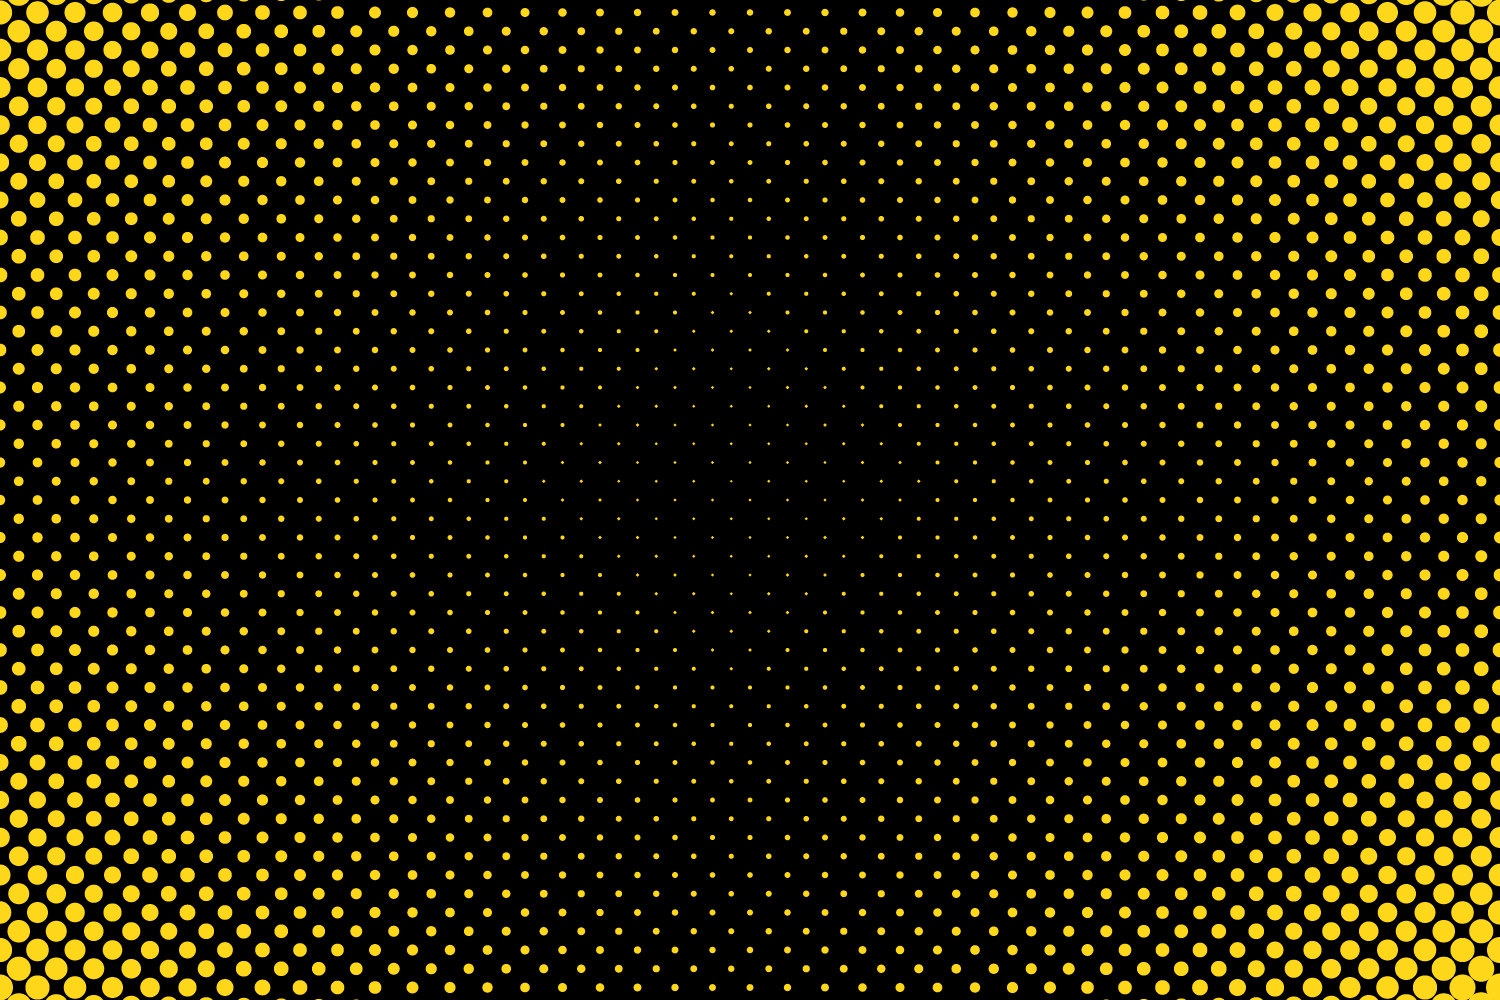 30 Halftone Circle Backgrounds AI, EPS, JPG 5000x5000 example image 2